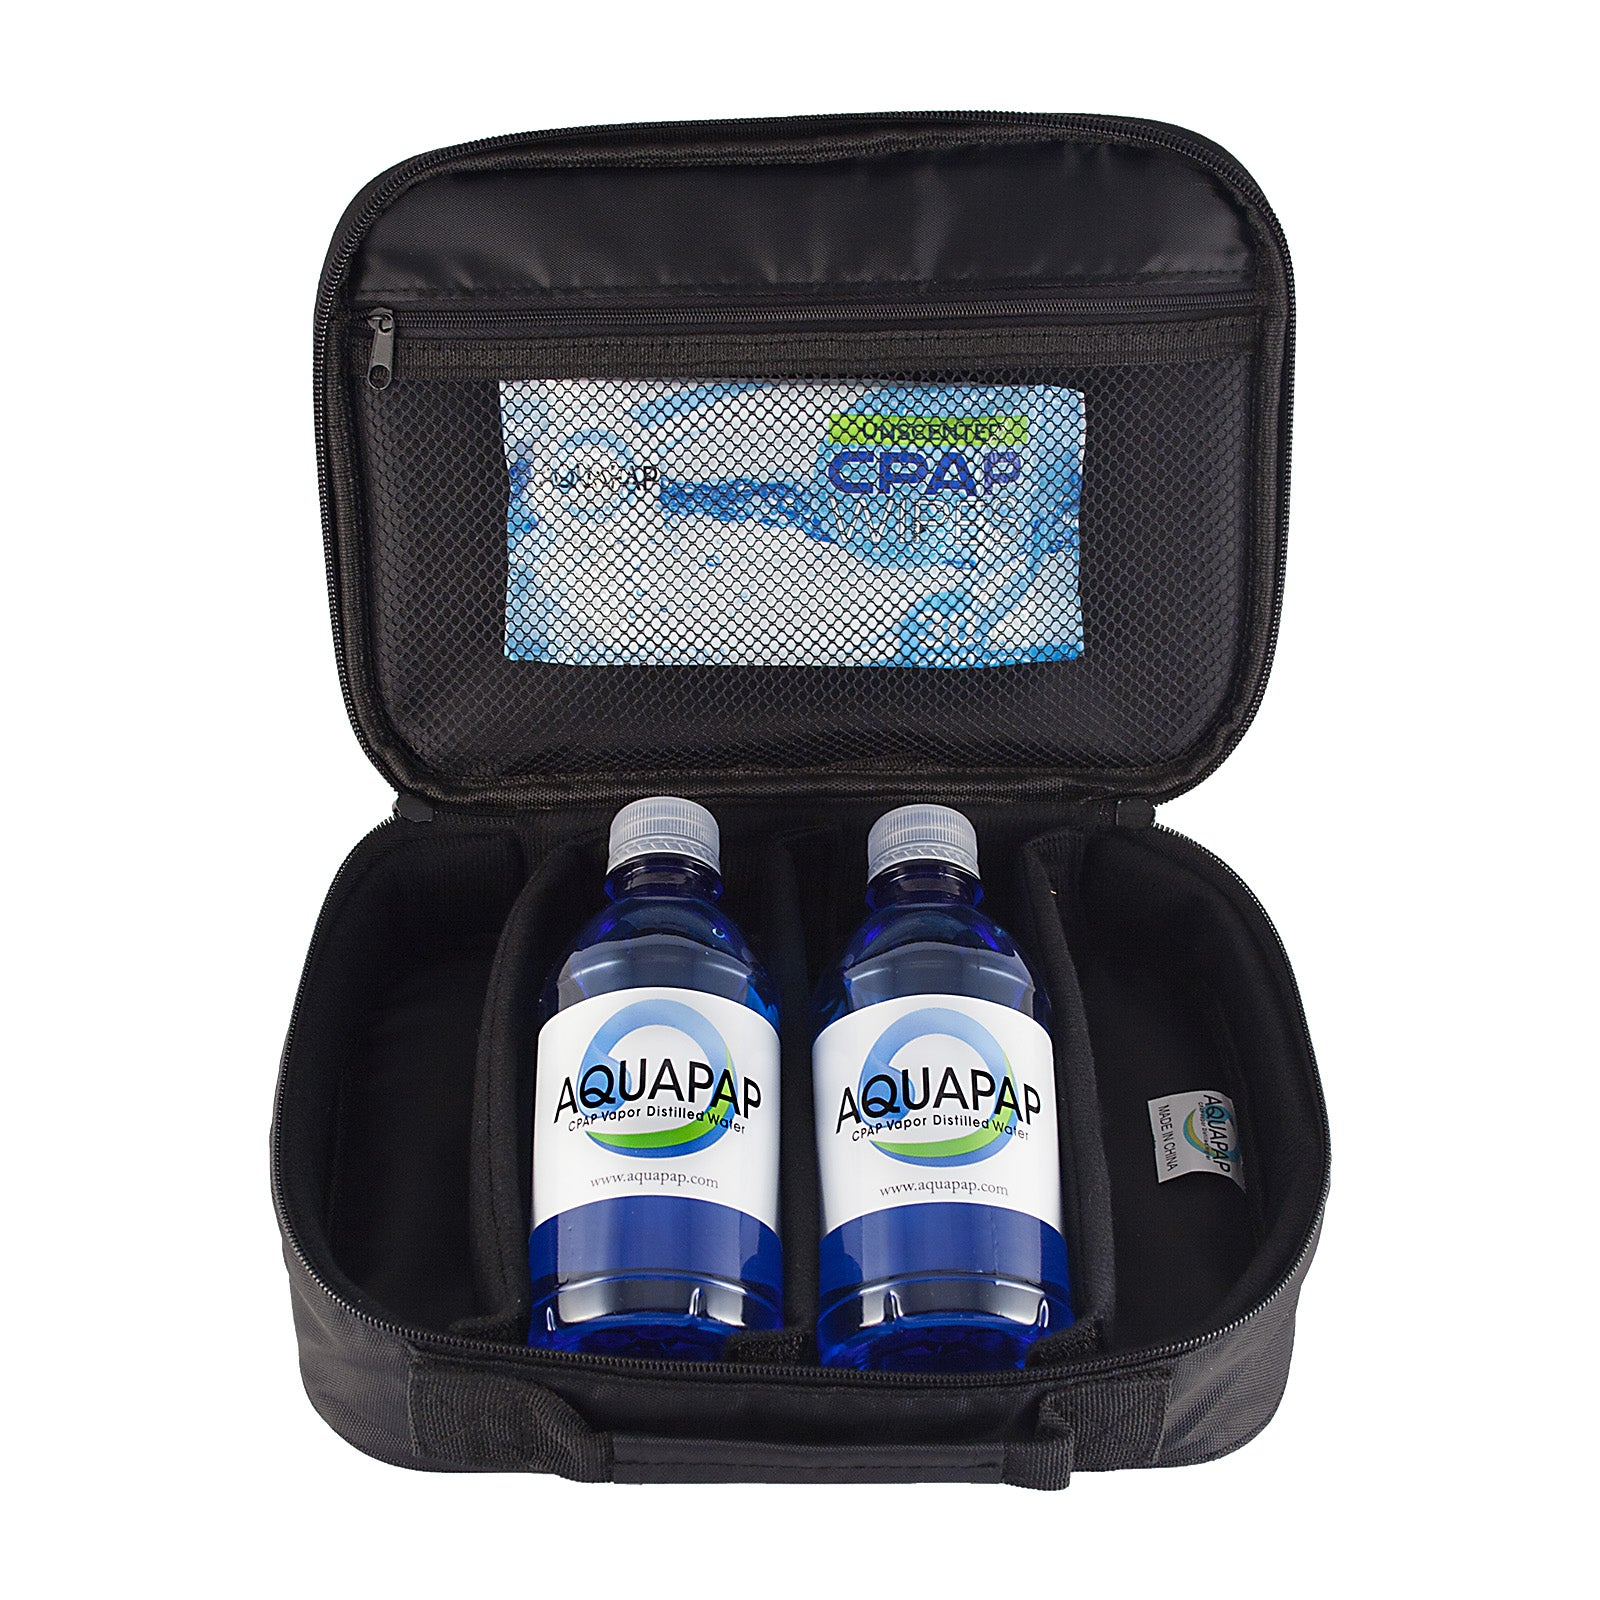 8e8aa96977a2 Weekender Refillable Travel Bag Set – Aquapap